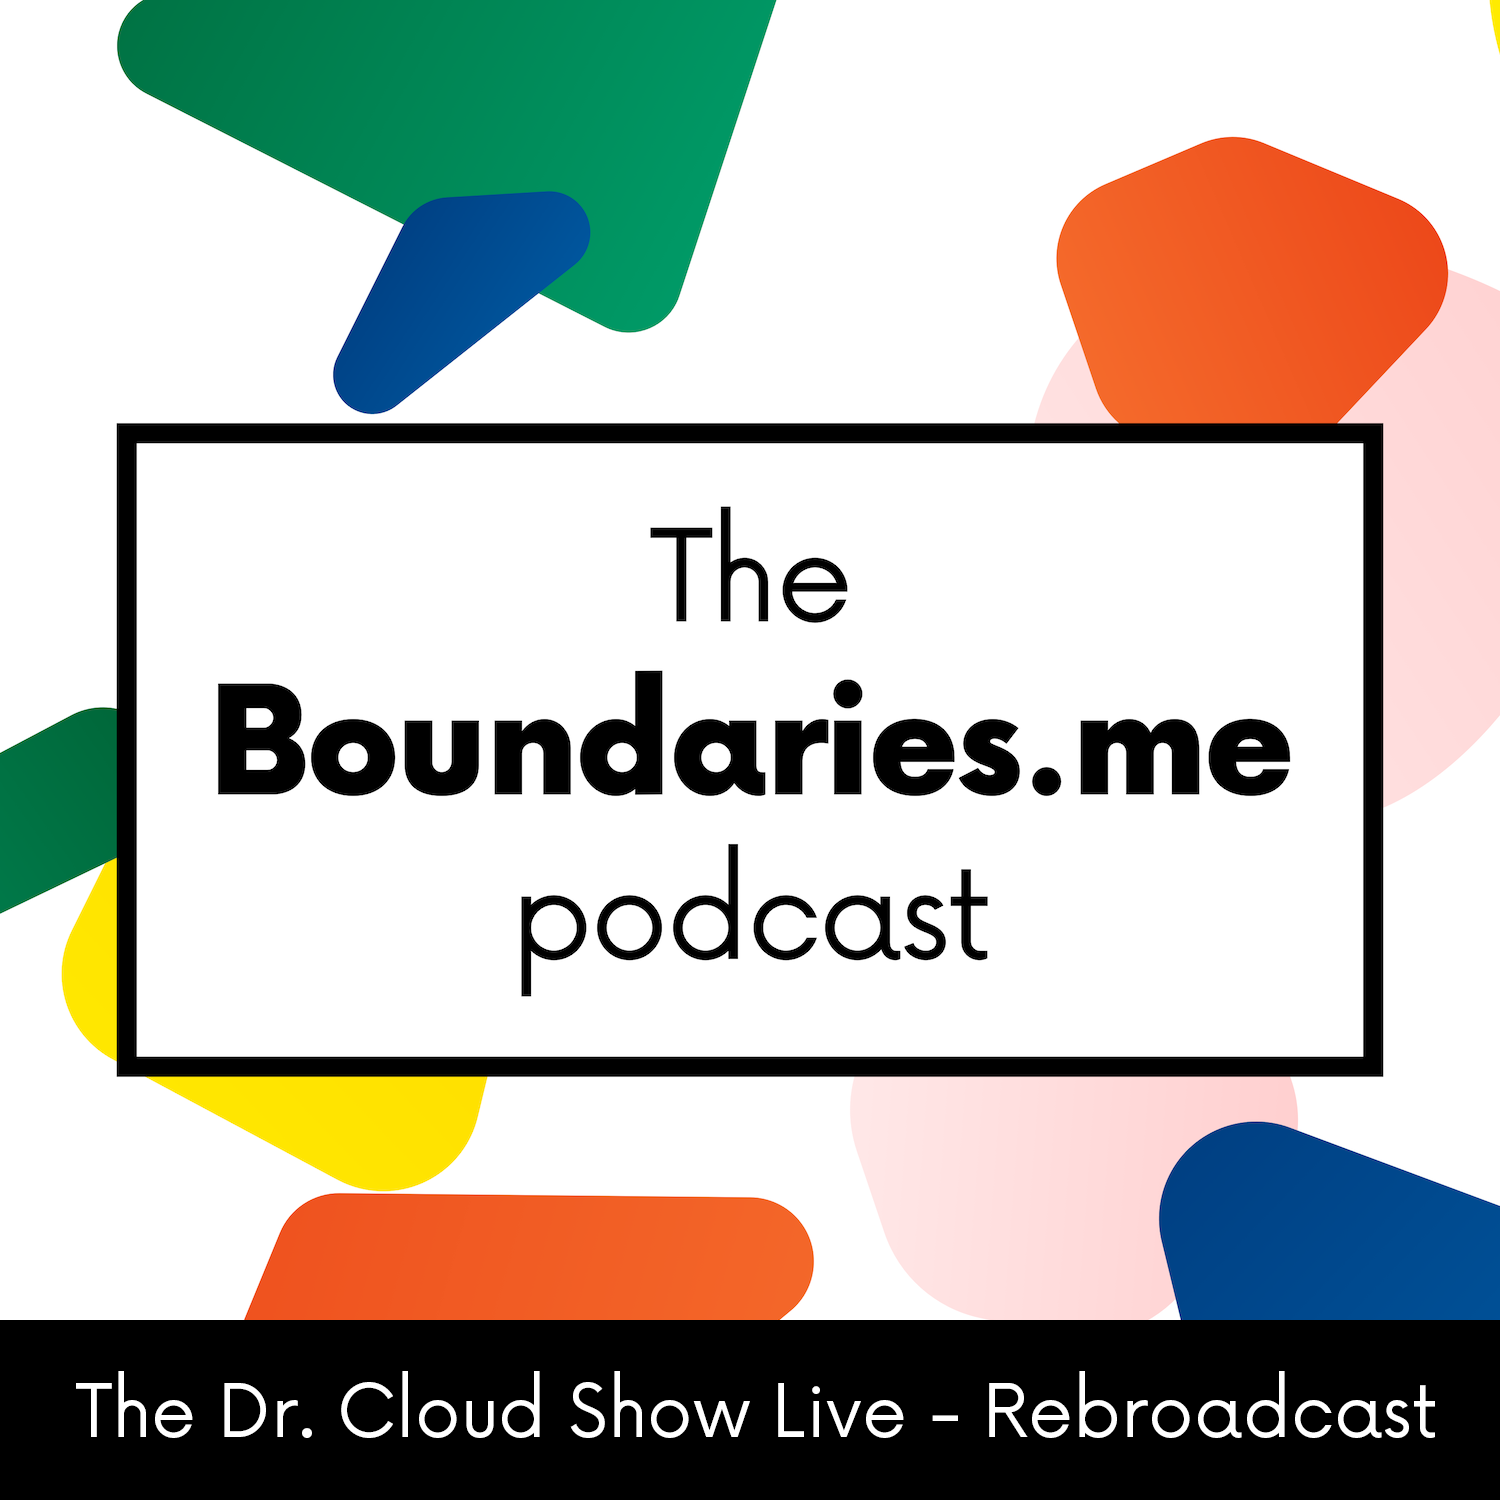 Episode 218 - The Dr. Cloud Show Live - The Essential Ingredient - 4-23-2021